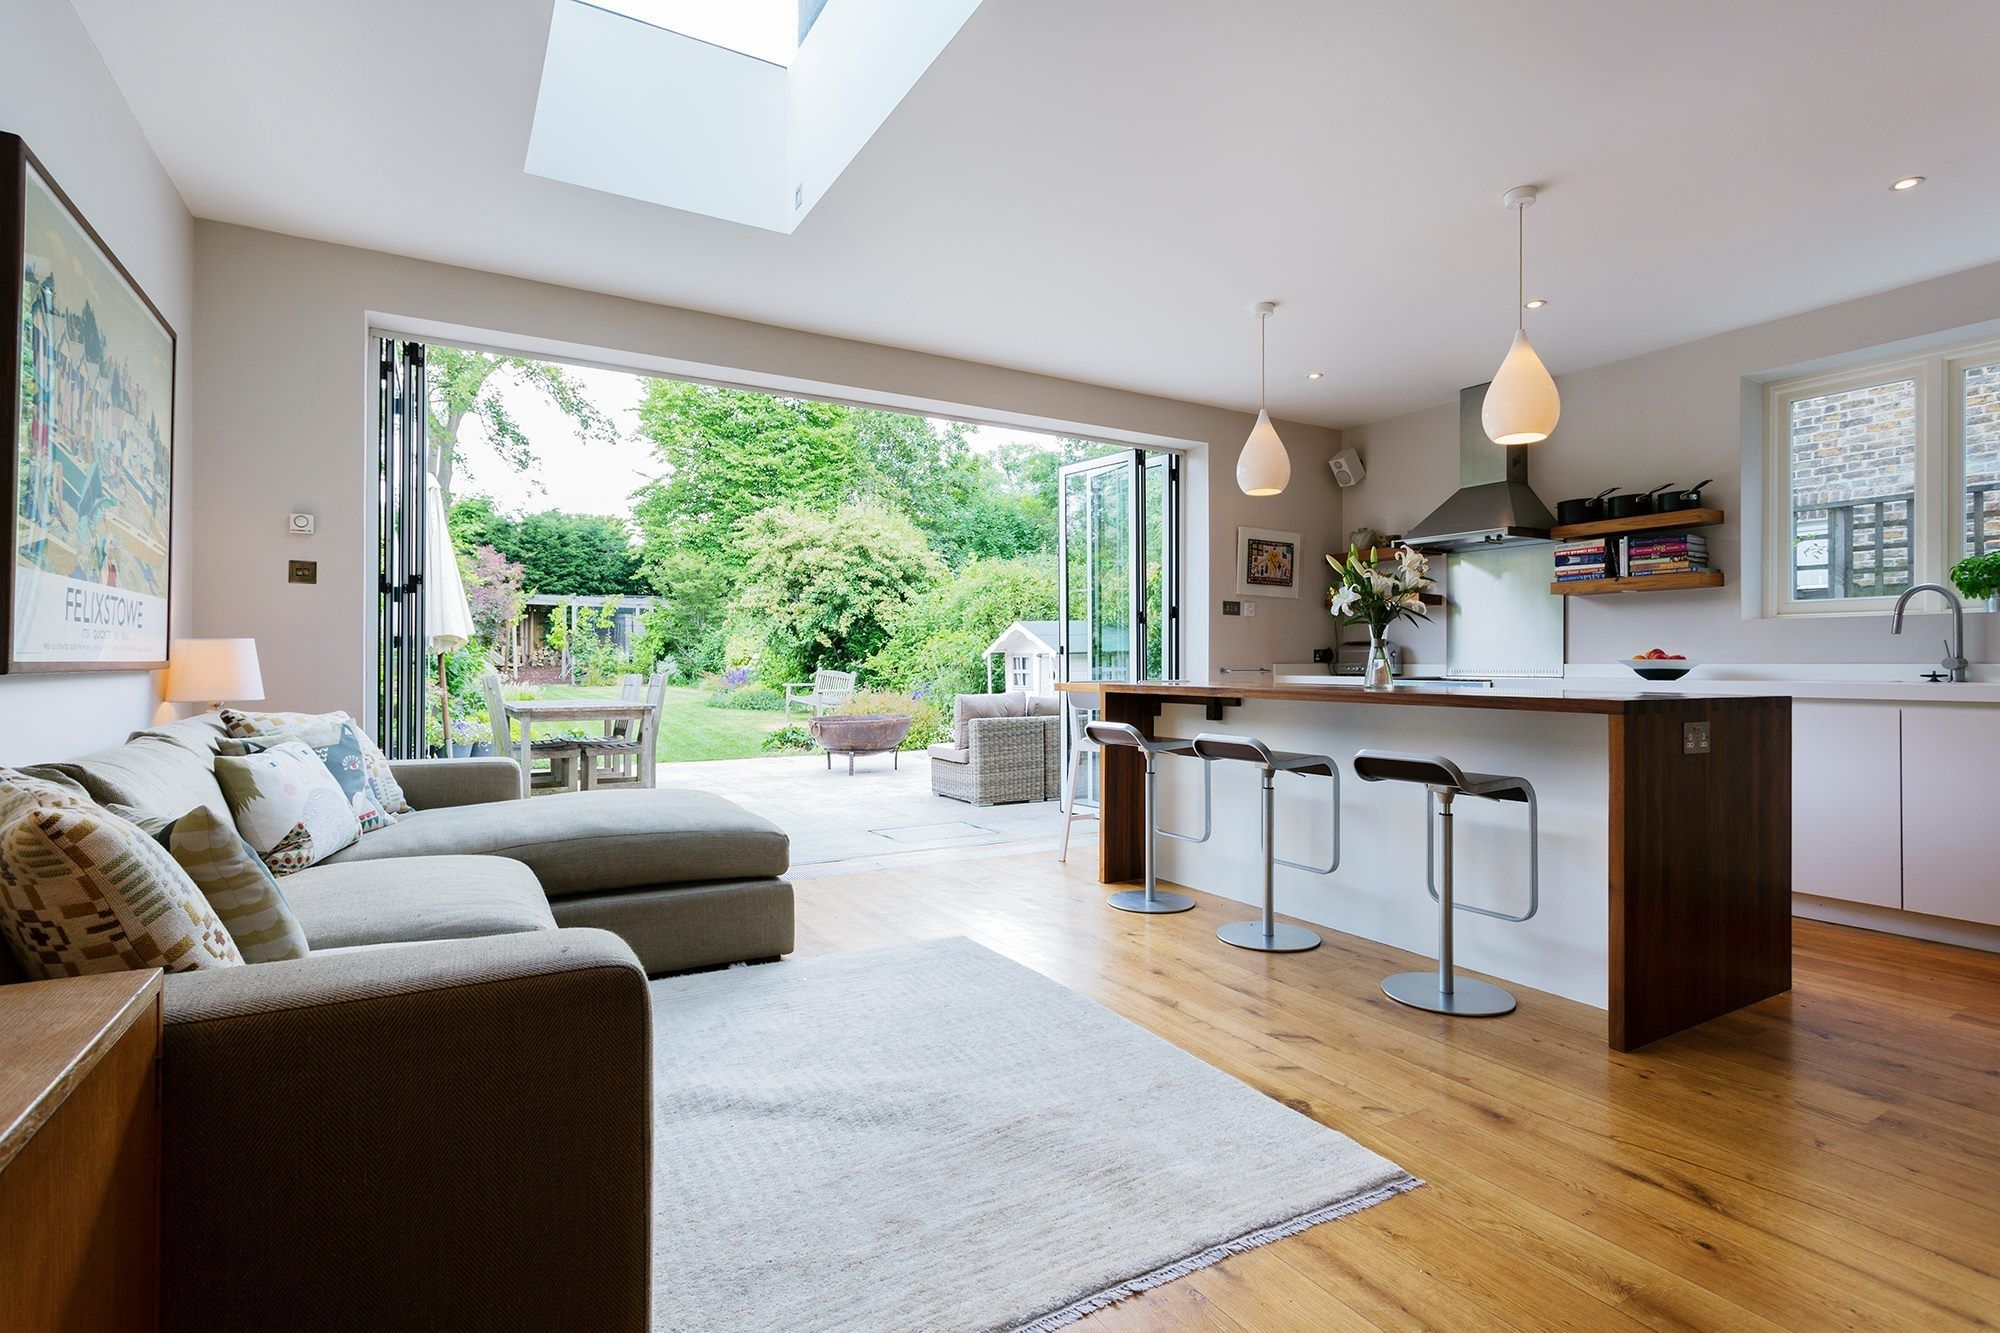 Kitchen extension ideas bi fold doors skylight kitchen island